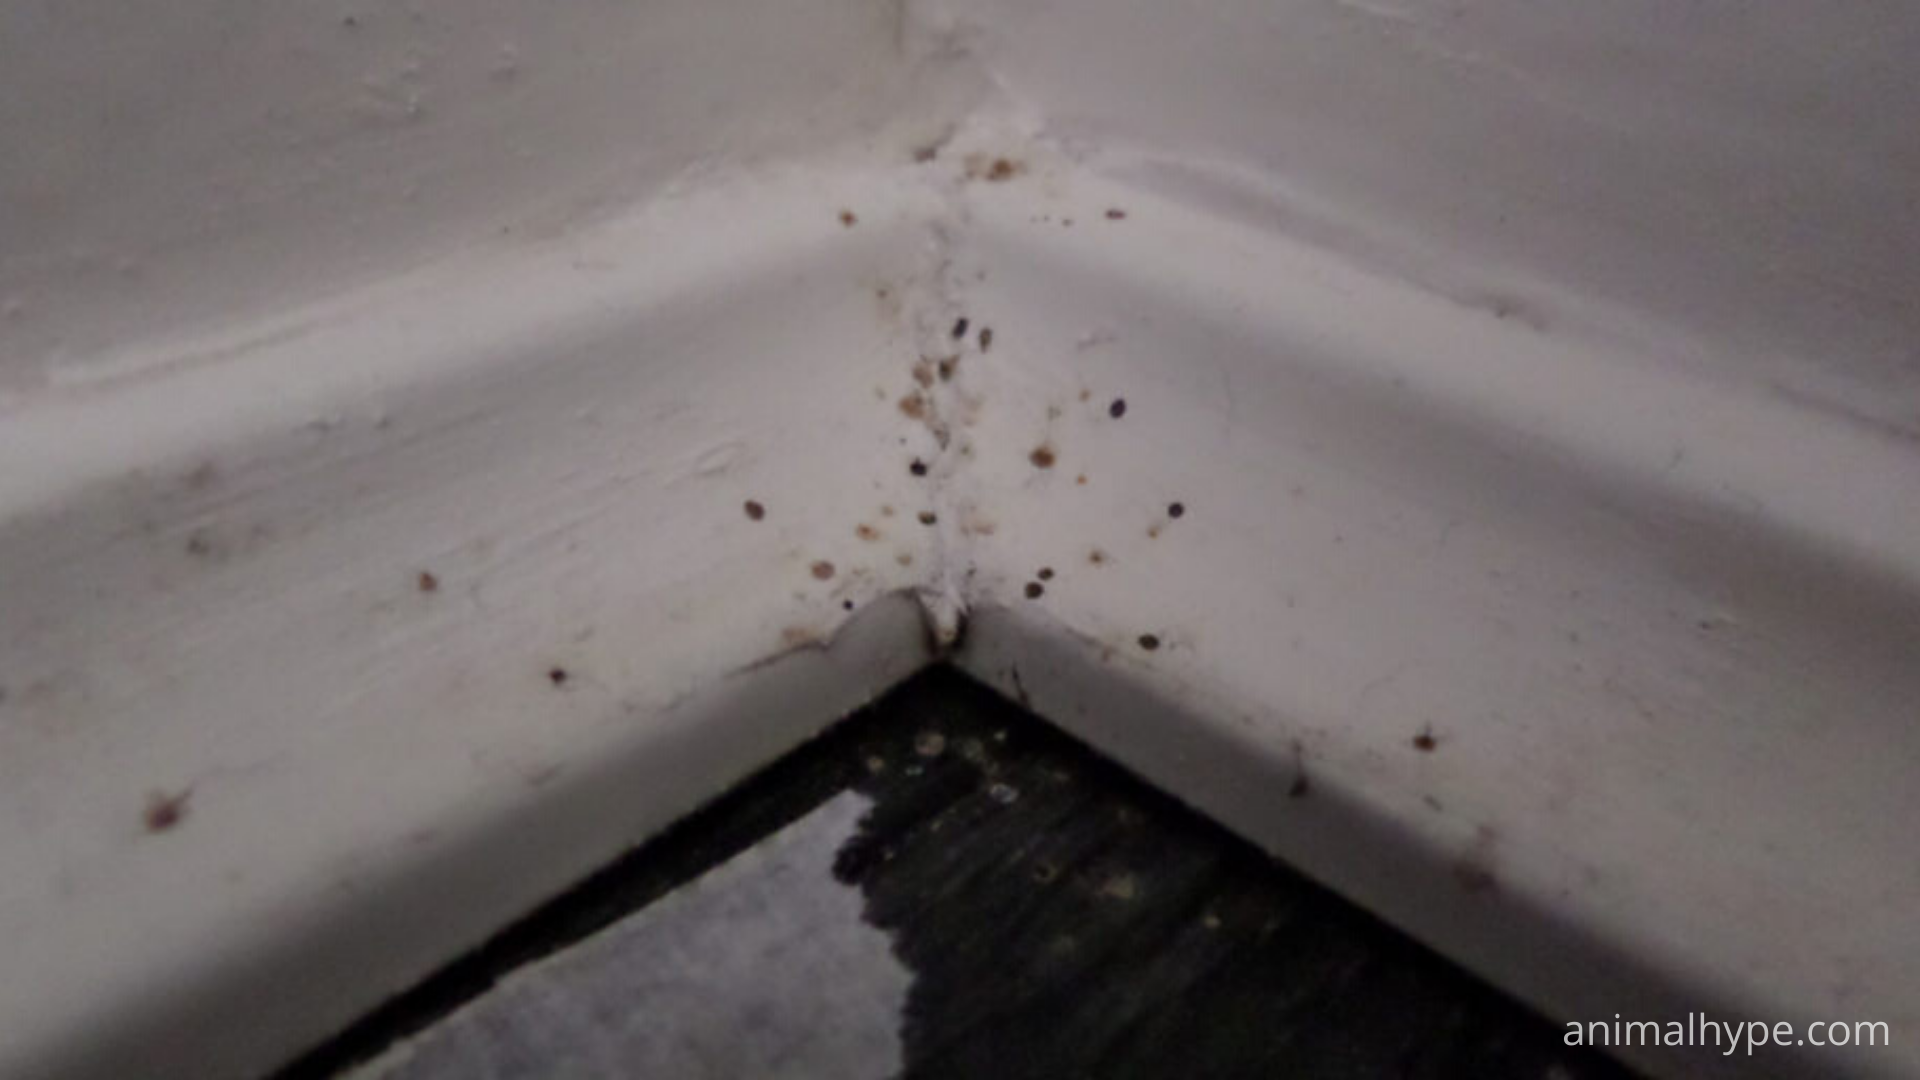 spider droppings